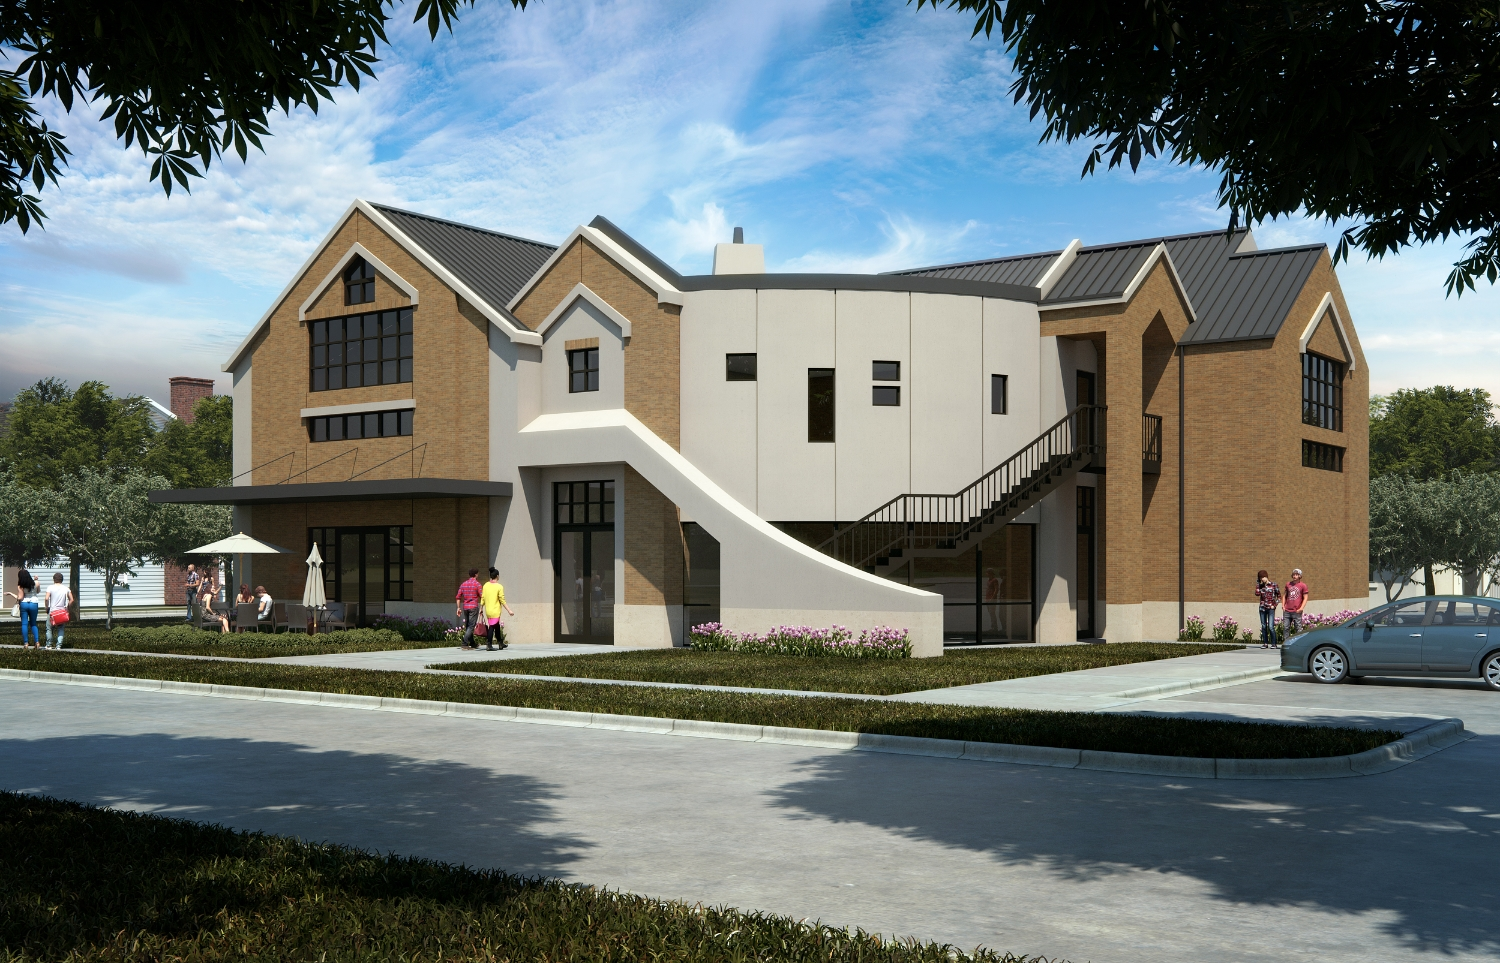 Rendering of Youth Ministry Building